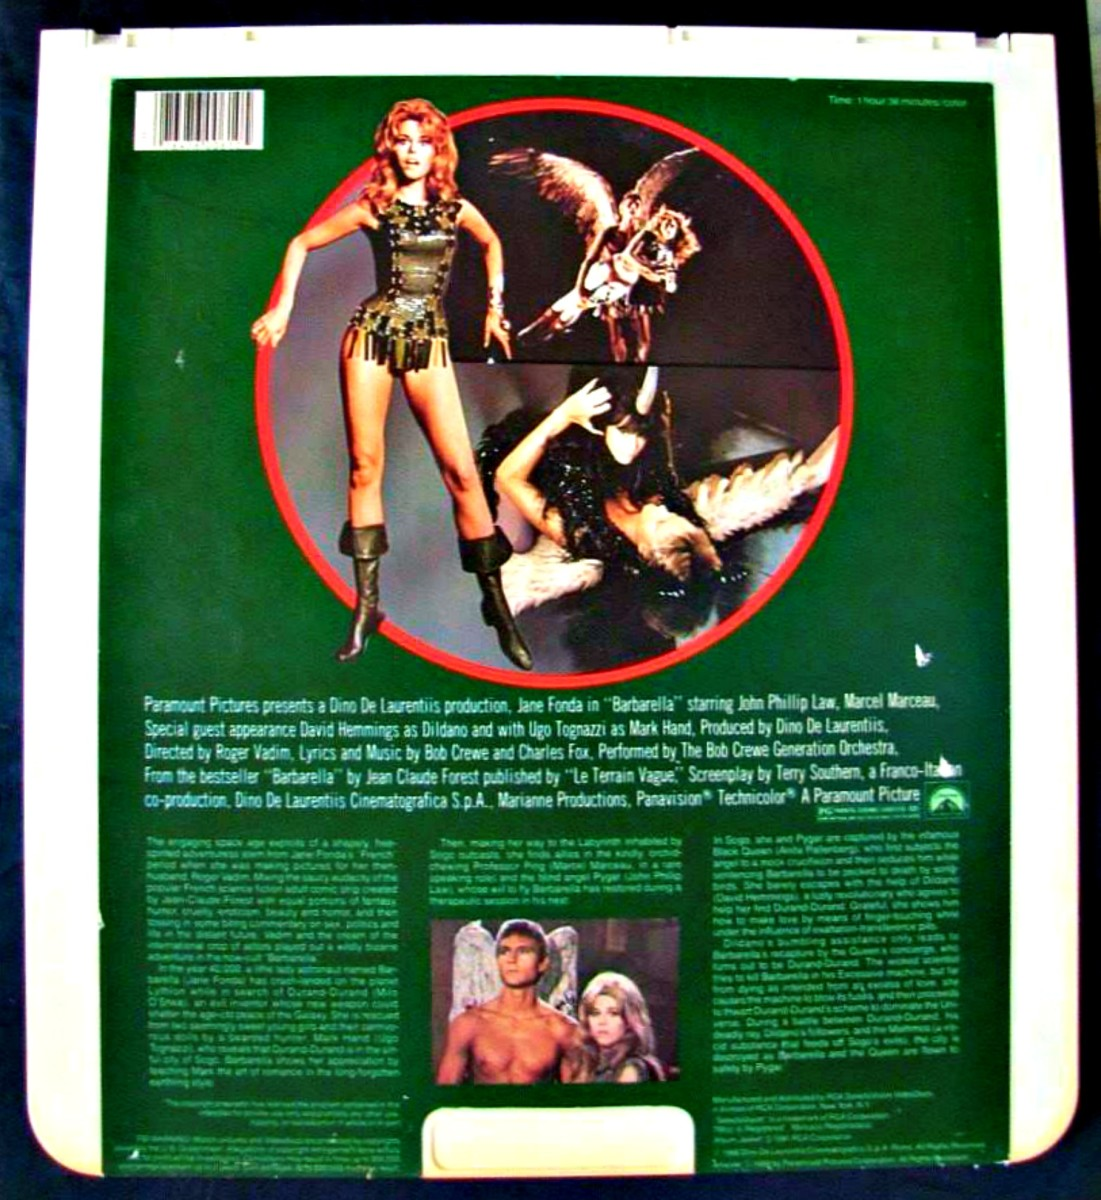 The Backside of the RCA Selectavision Video Disc BARBARELLA